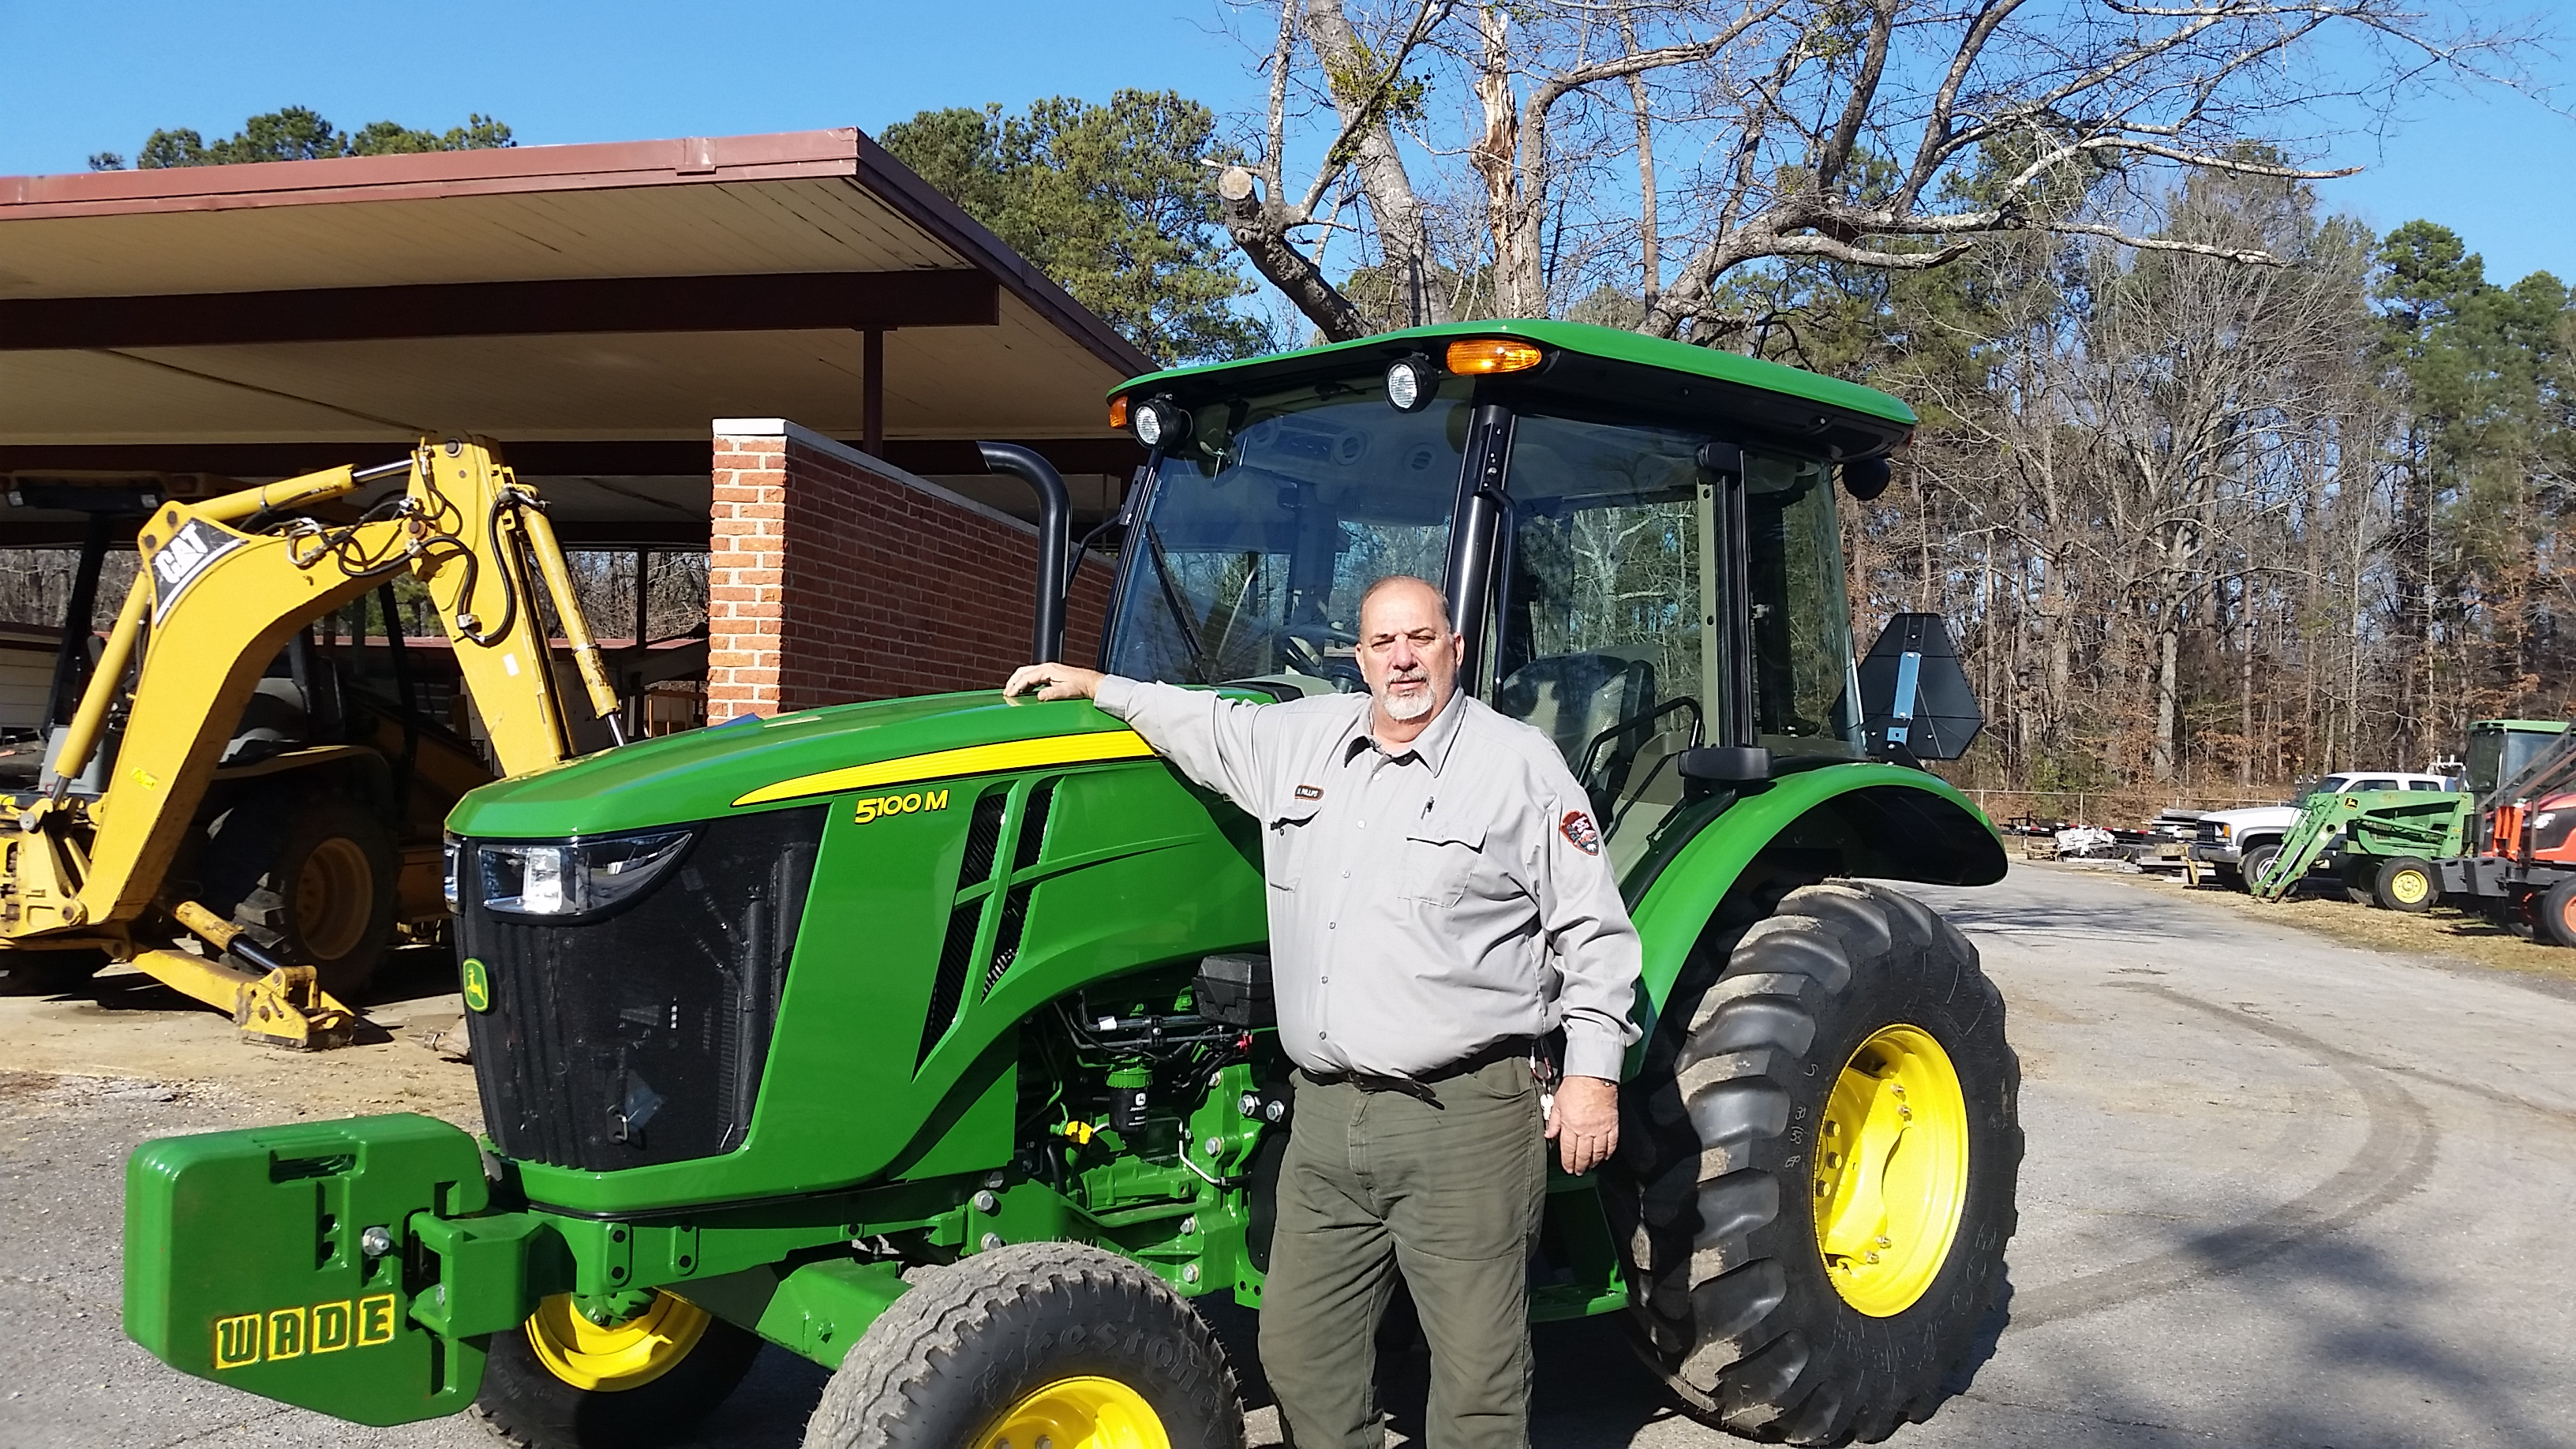 Michael Phillips stands by one of the many tractor's he operated and maintained at the Parkway.